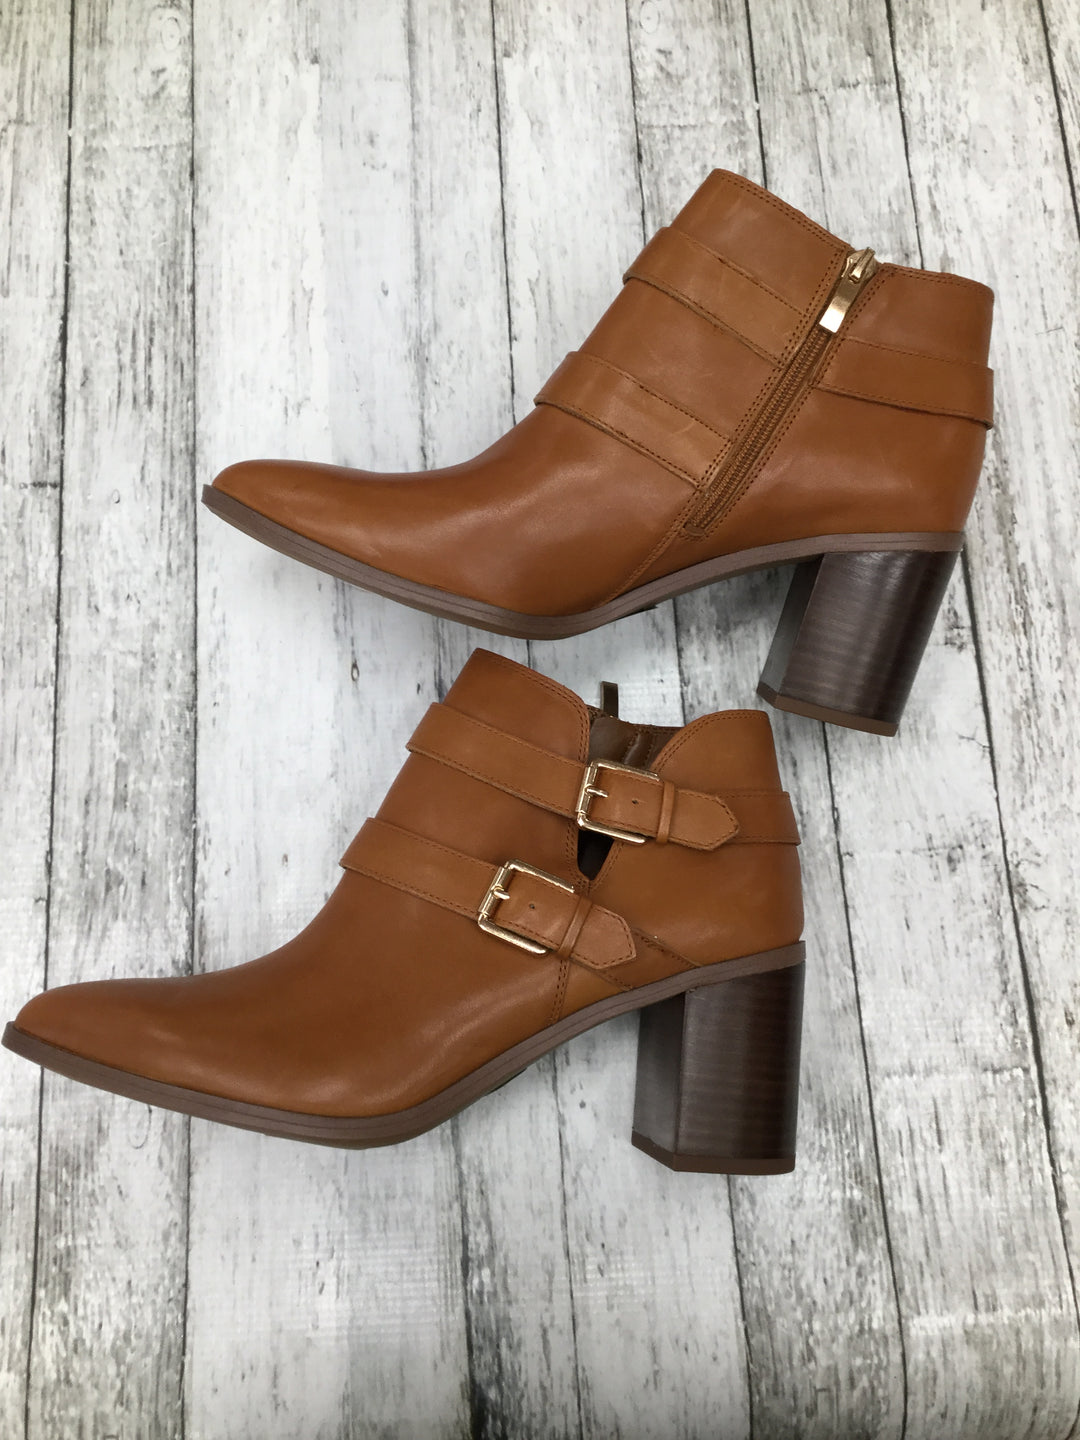 Primary Photo - BRAND: FRANCO SARTO , STYLE: BOOTS ANKLE , COLOR: BROWN , SIZE: 11 , SKU: 105-4940-2302